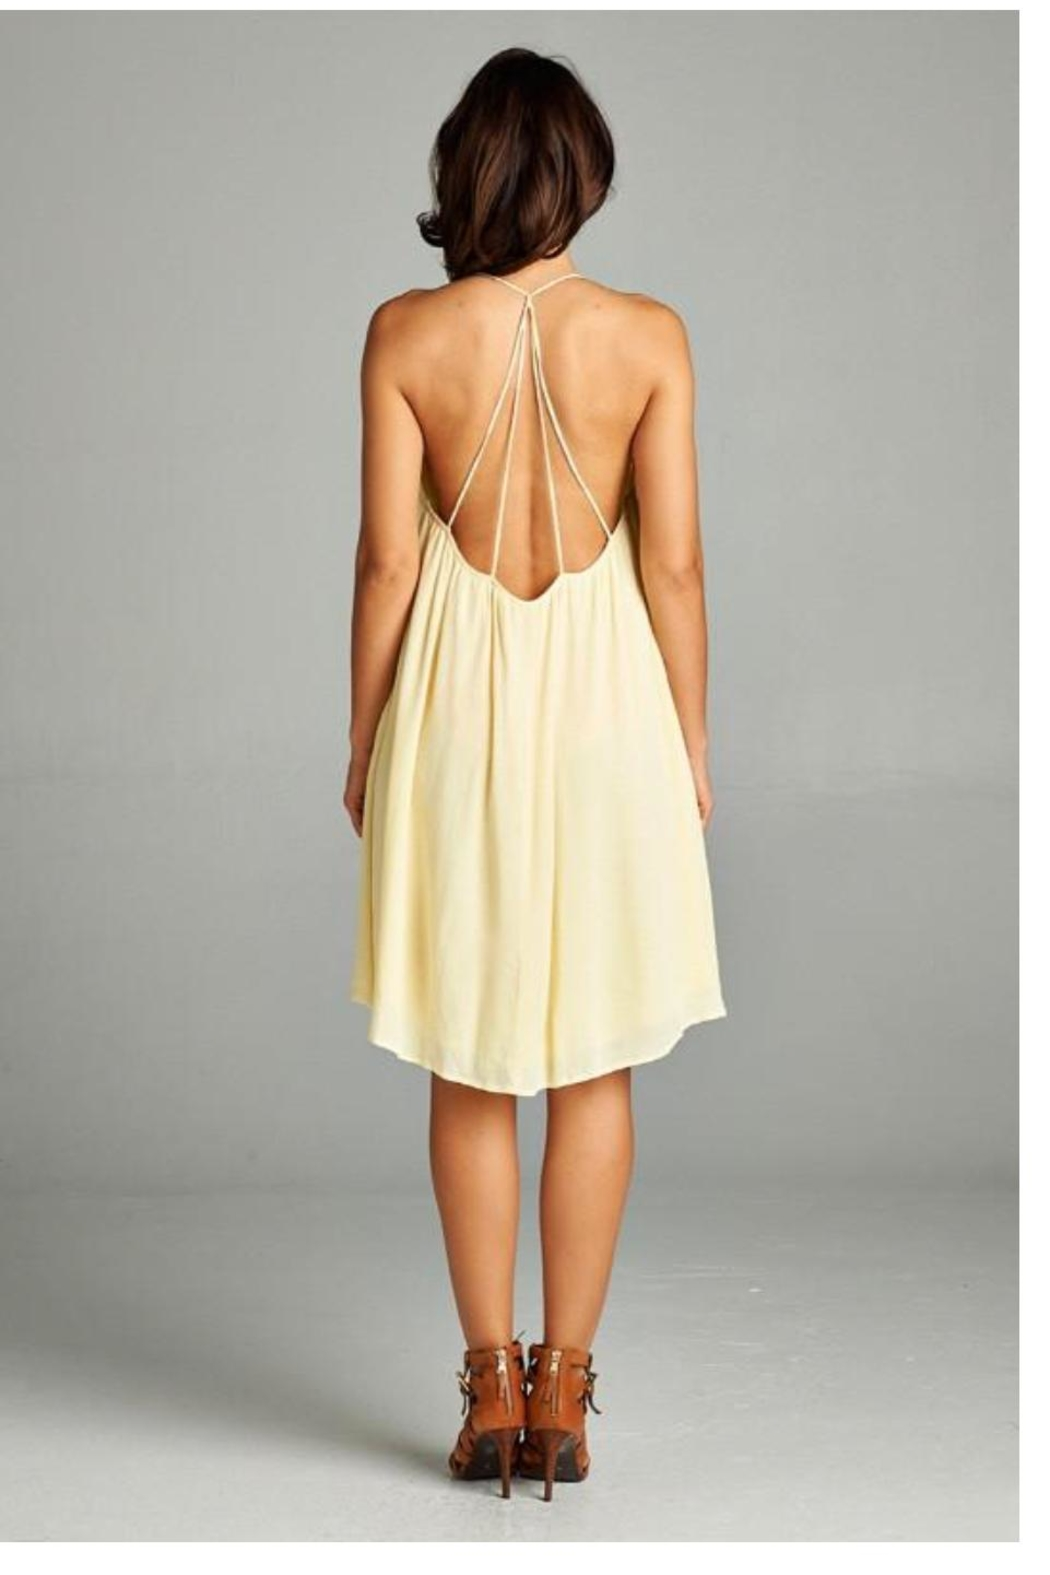 A Peach Casual Yellow Sundress - Front Full Image